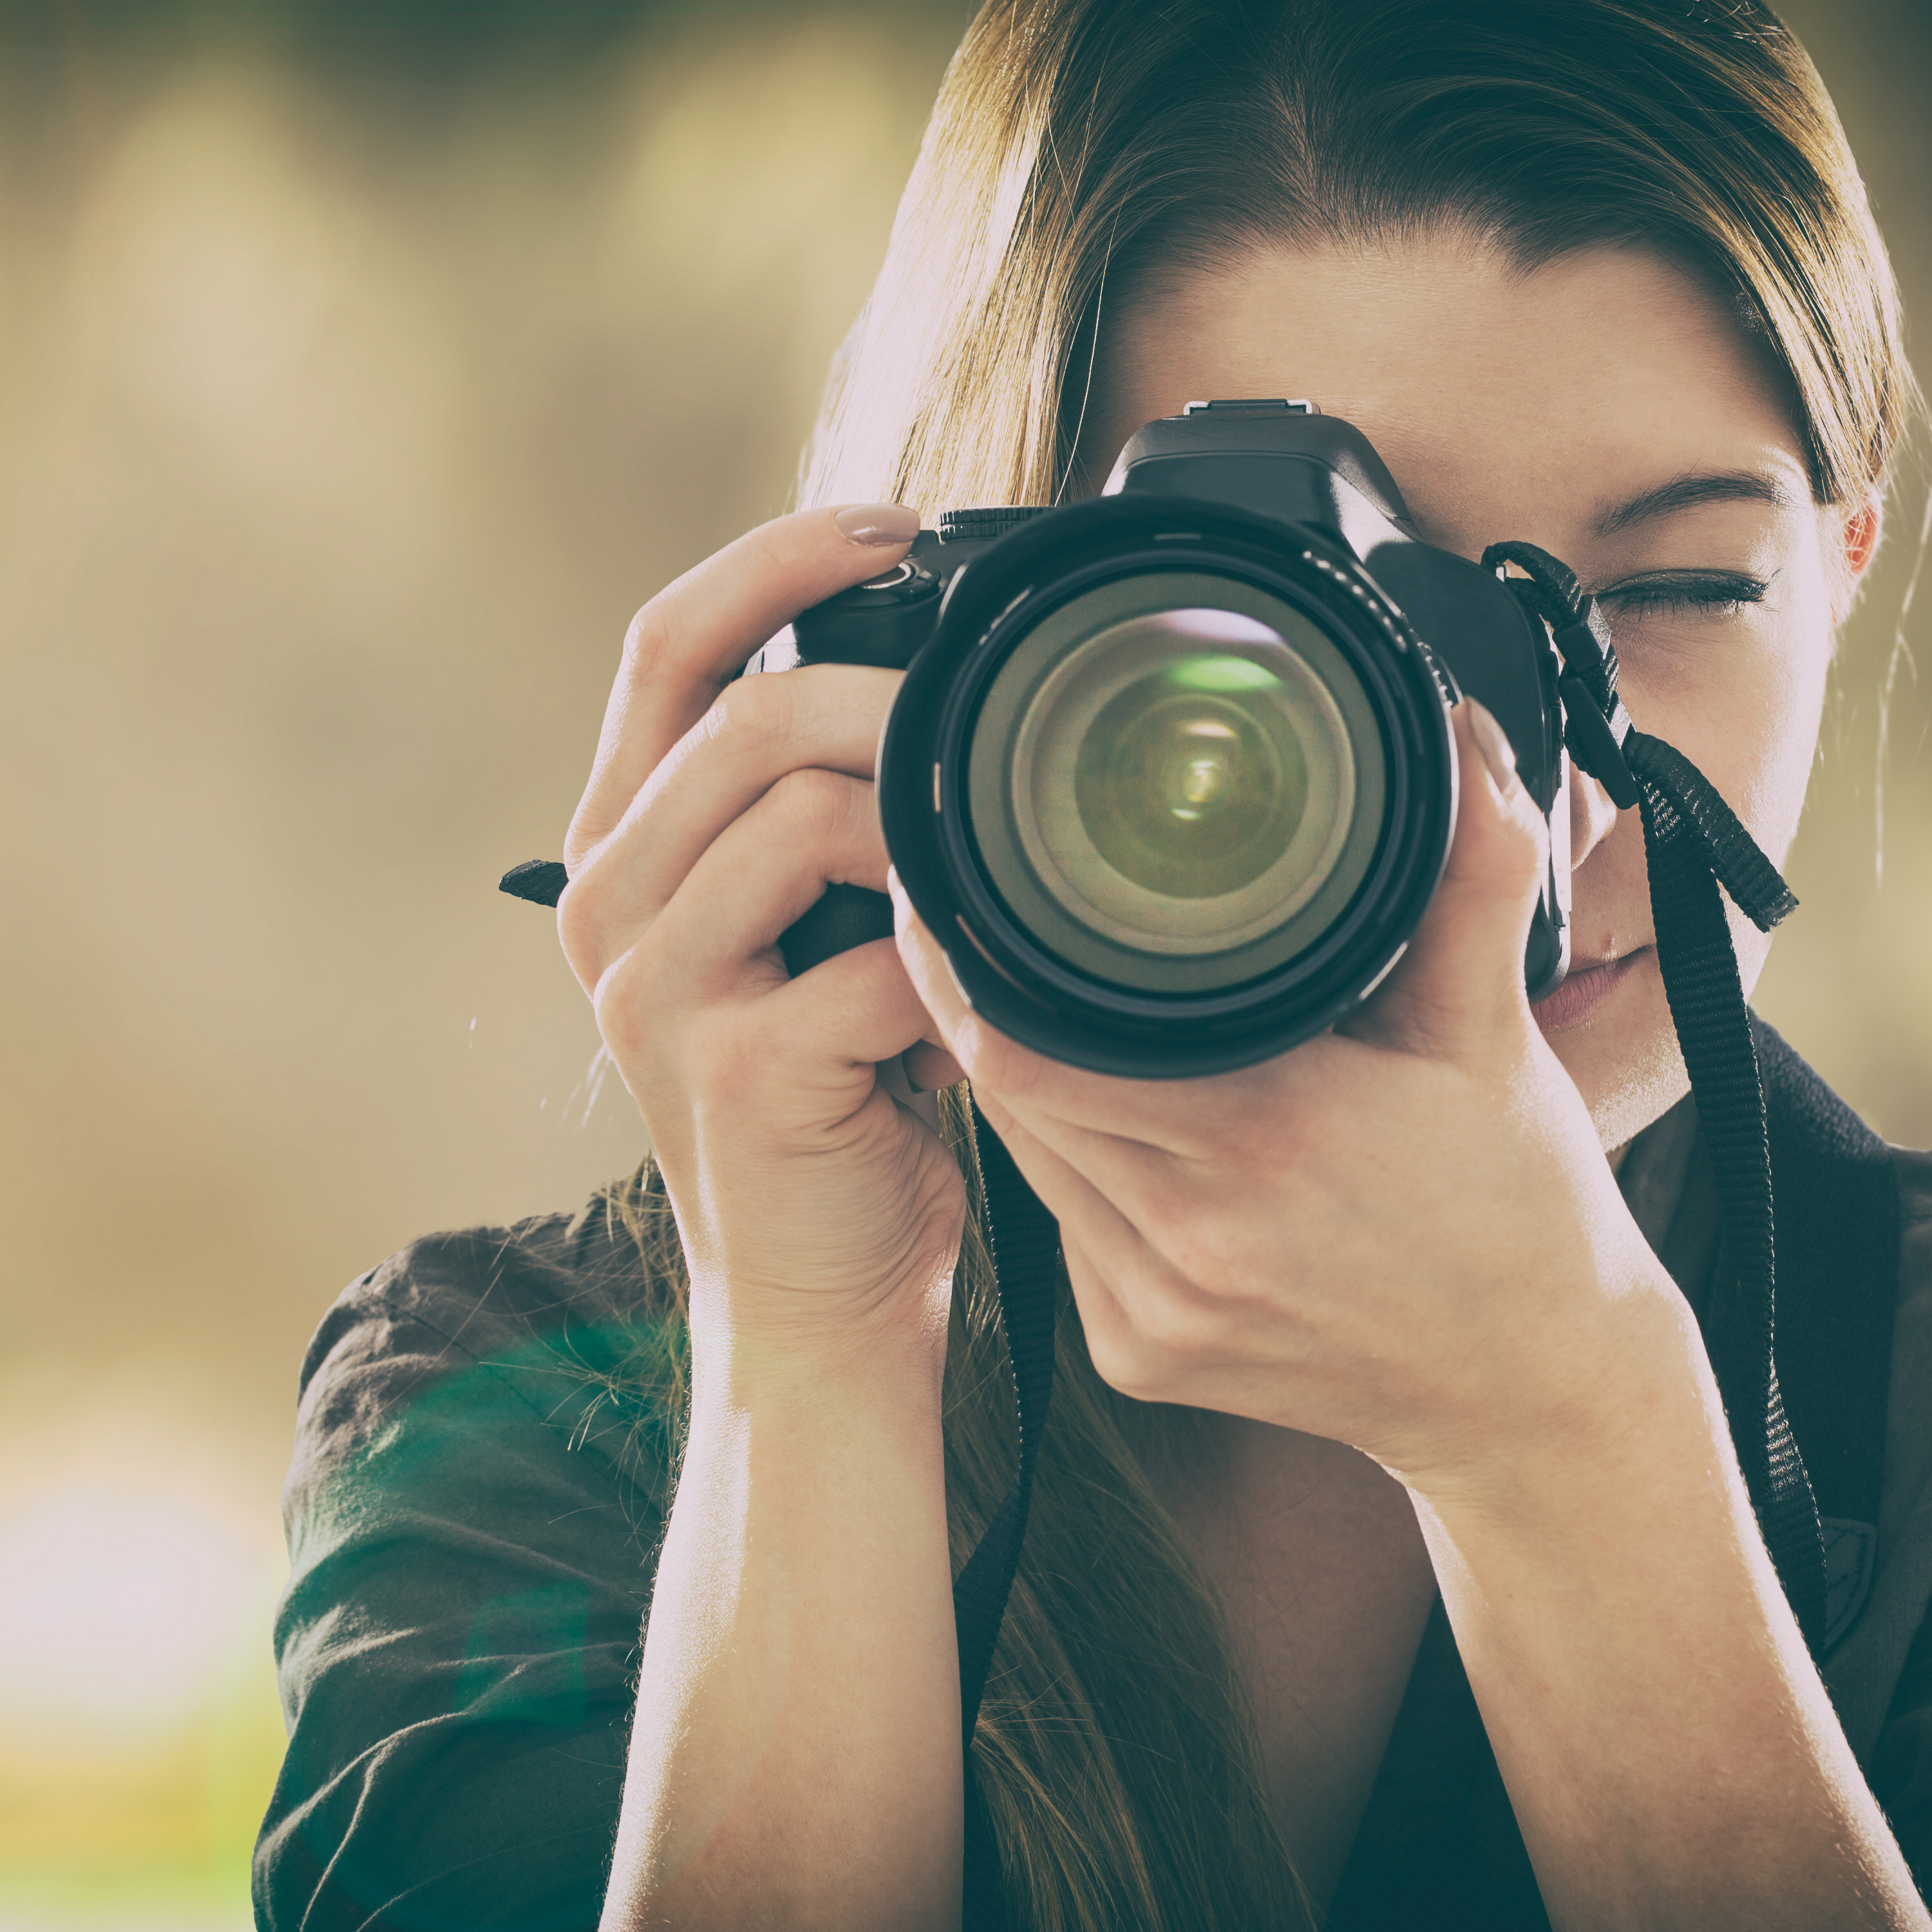 Teens invited to join 2nd-annual Teen Photo Scavenger Hunt